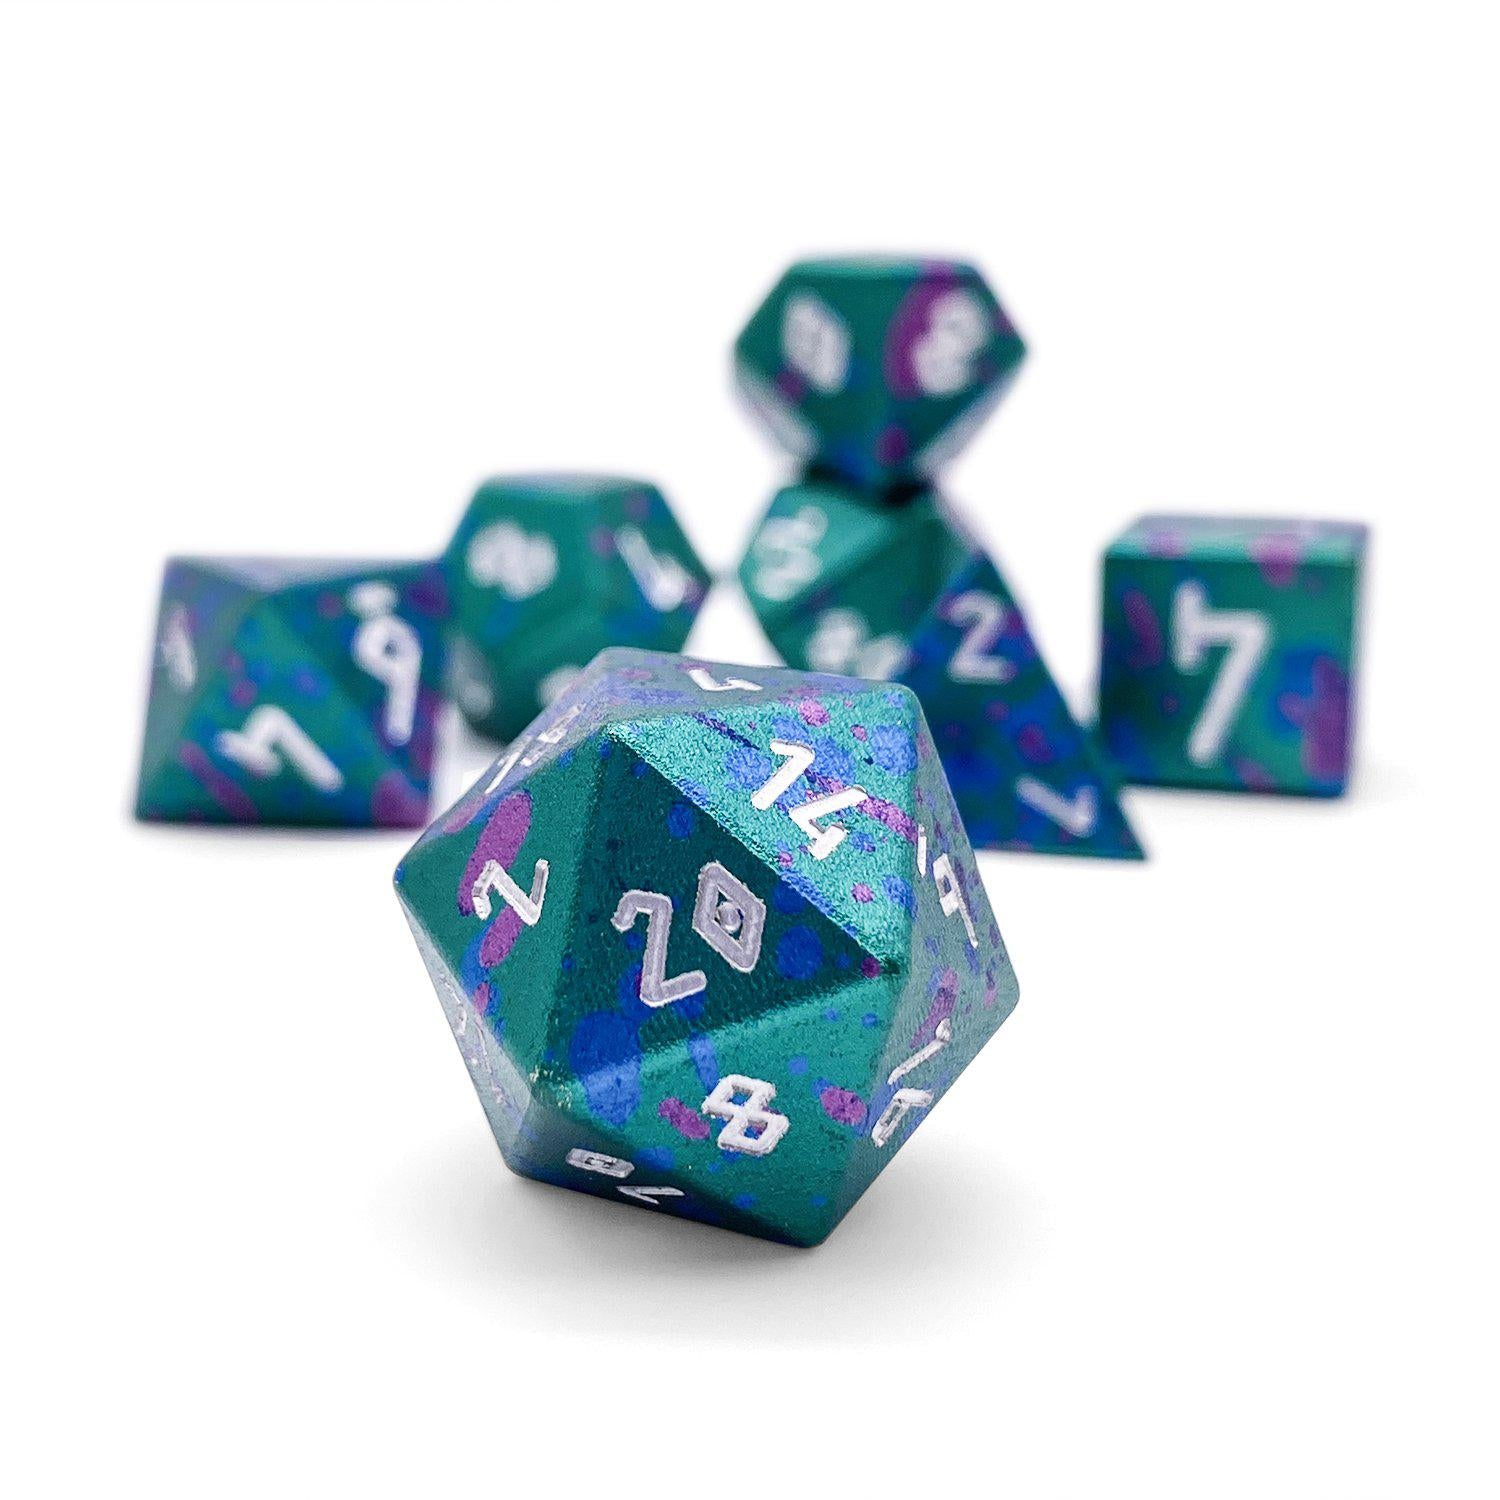 Augury - Wondrous Dice Set of 7 RPG Dice by Norse Foundry Precision Polyhedral Dice Set